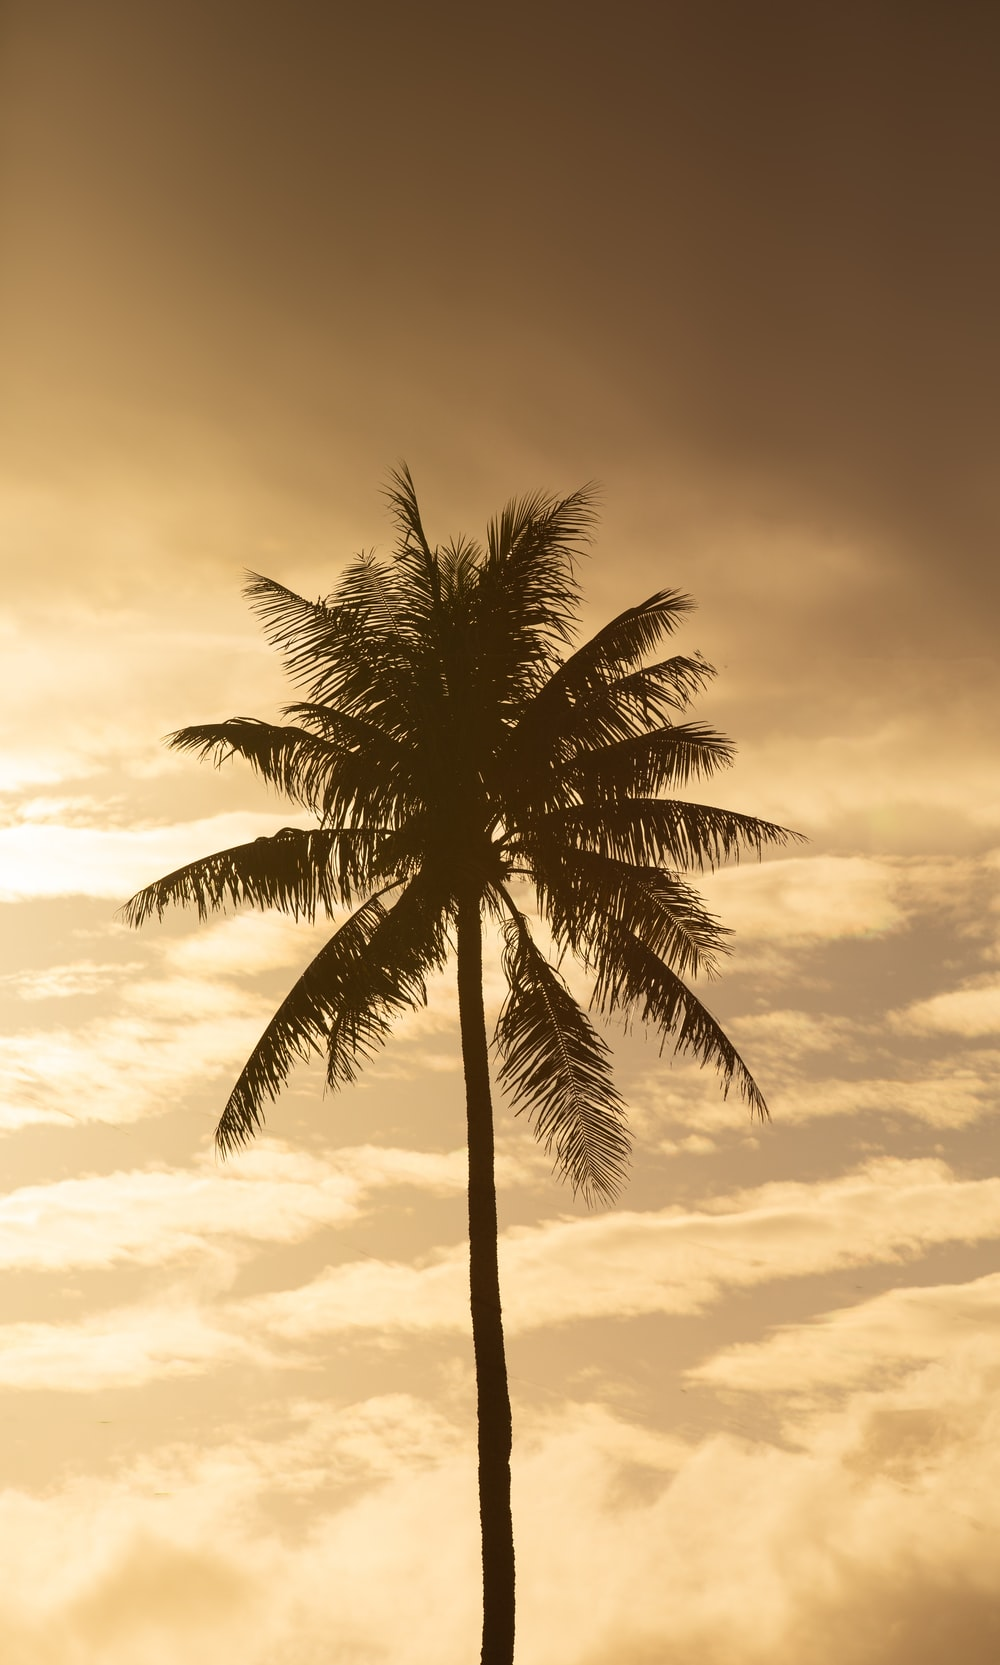 palm tree under cloudy sky during daytime